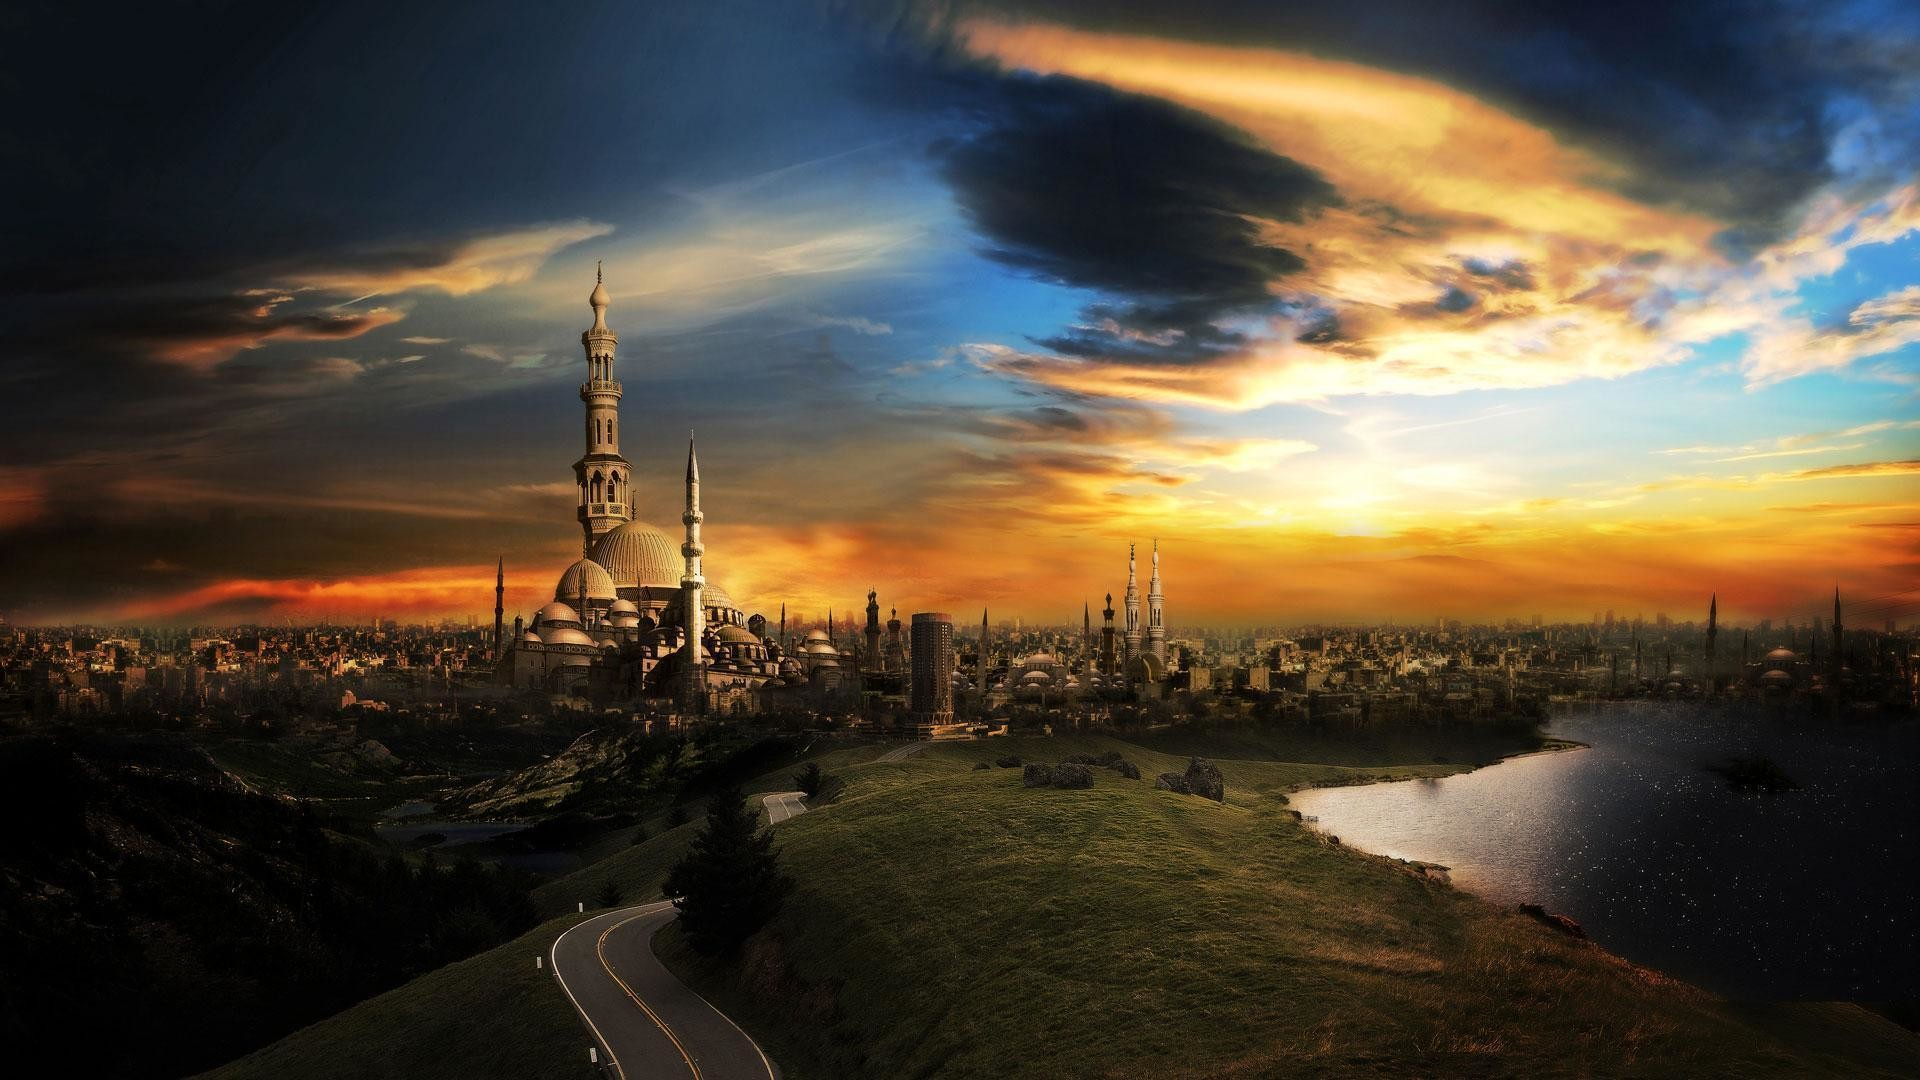 1920x1080 Arabic Wallpaper - Viewing Gallery